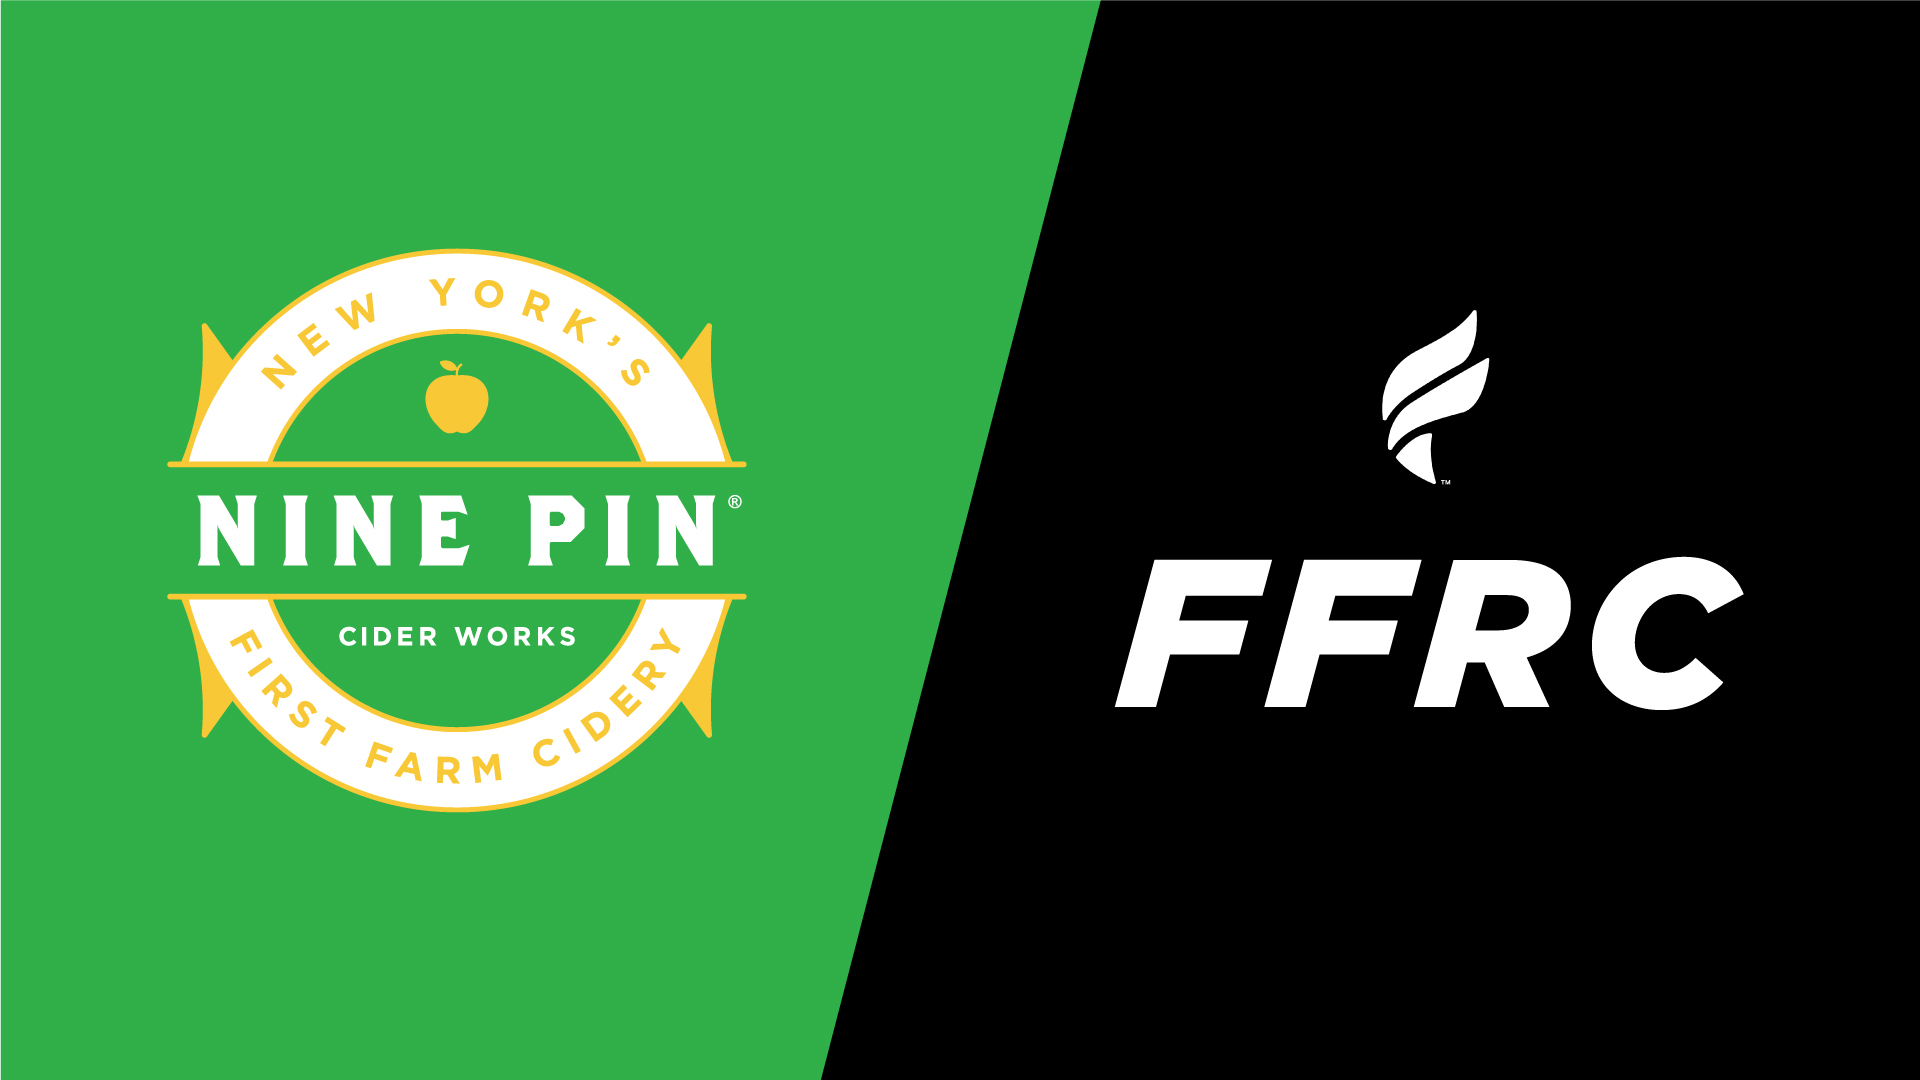 Green and black image with Nine Pin Cider crest logo and FFRC